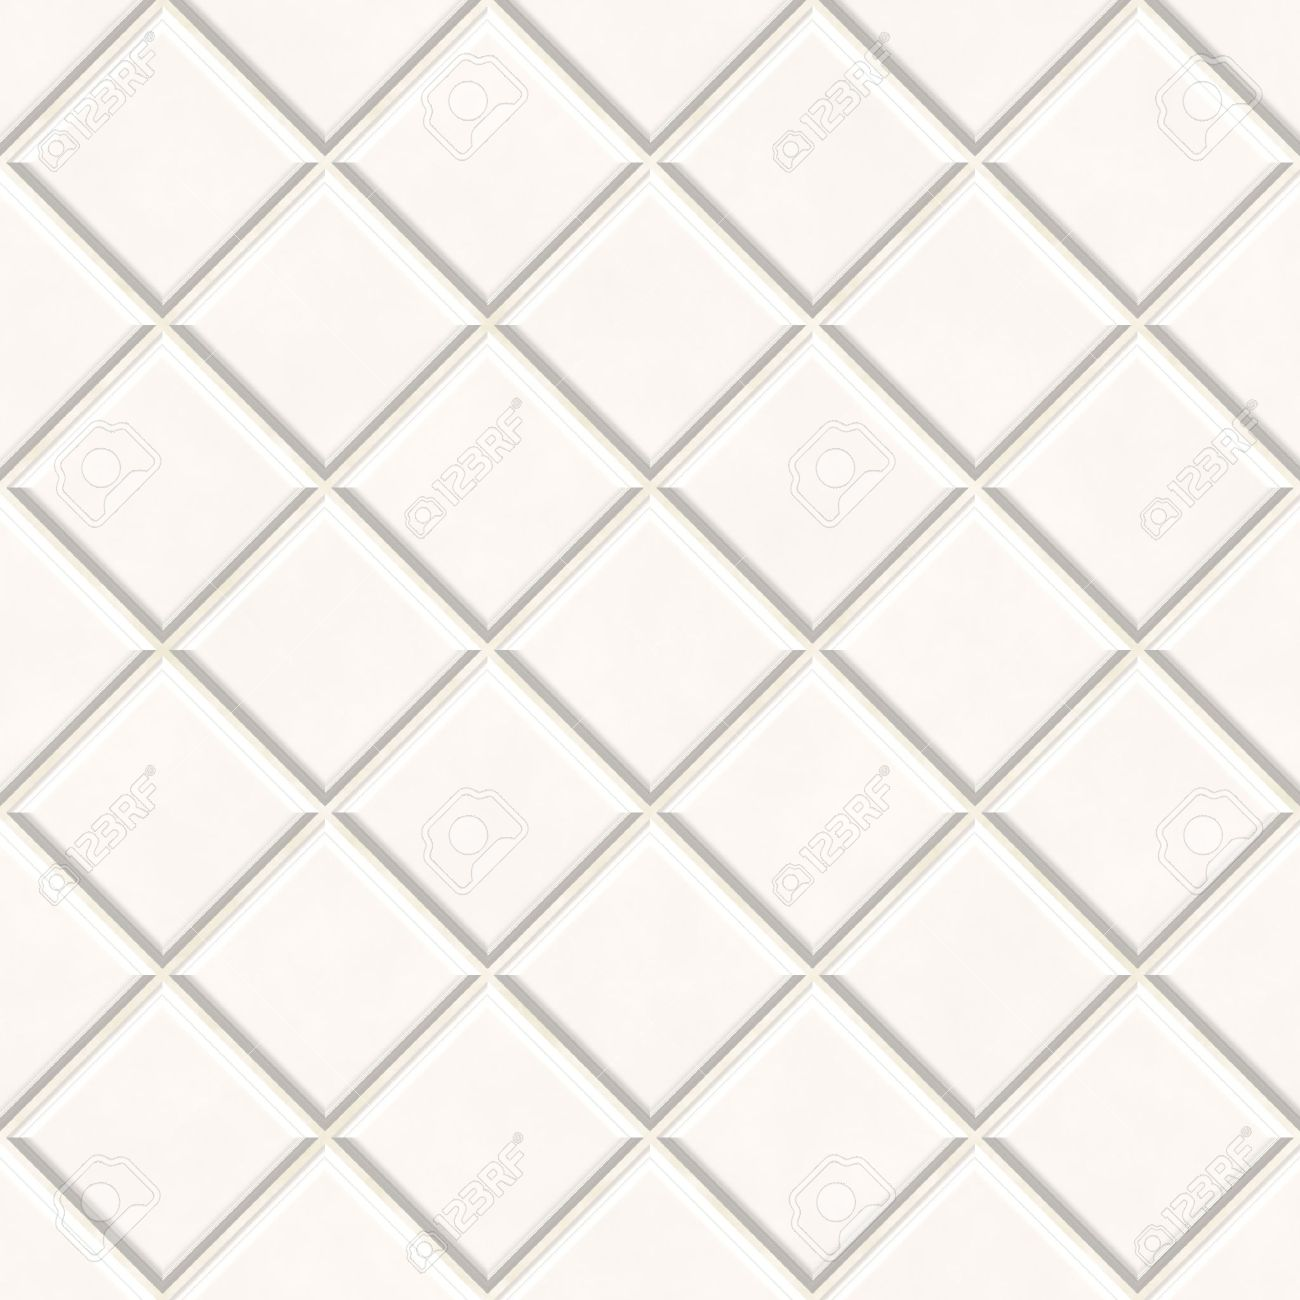 Seamless Kitchen Flooring Seamless White Tiles Texture Background Kitchen Or Bathroom